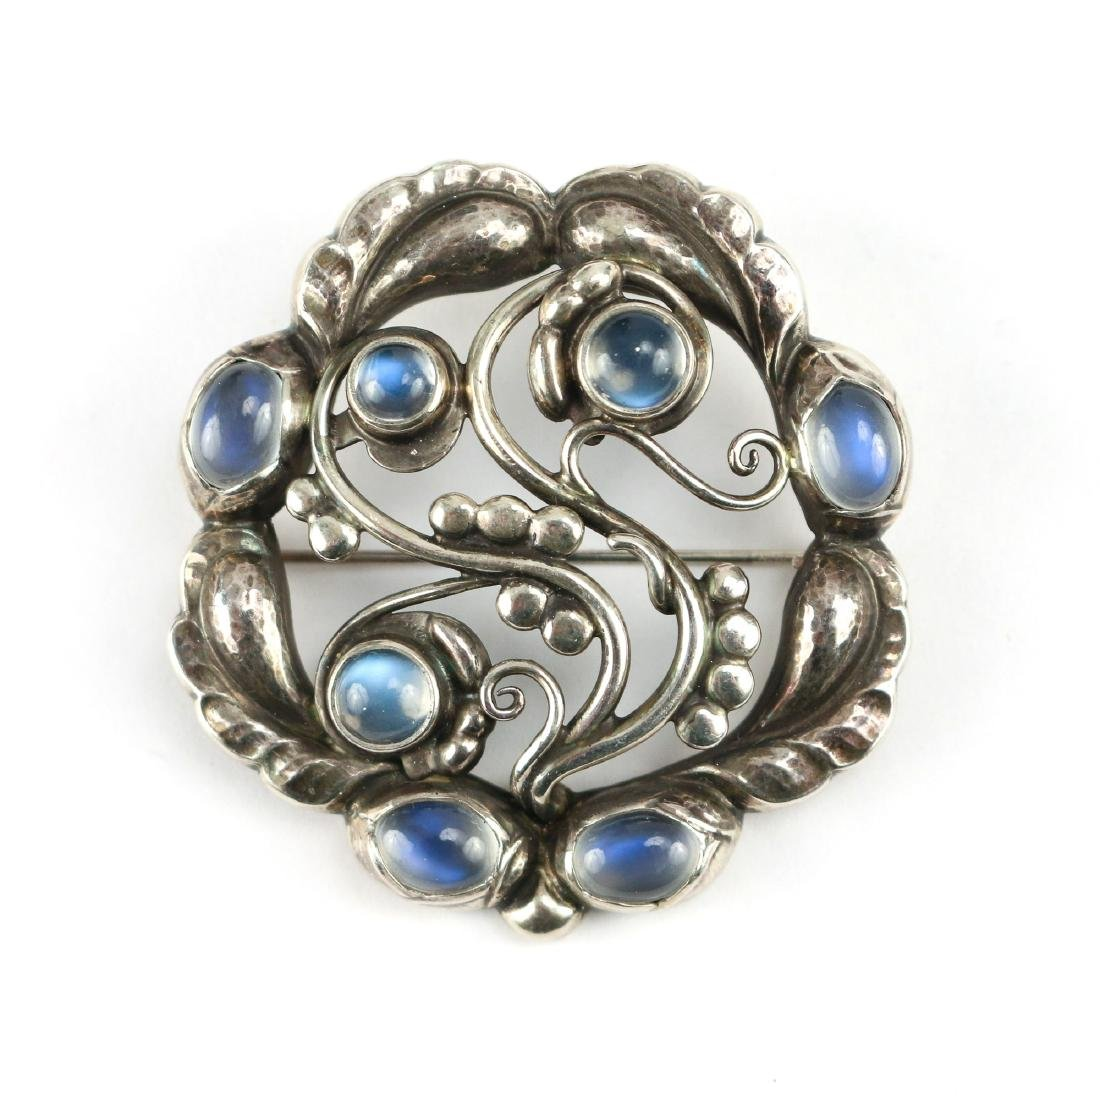 GEORG JENSEN MOONSTONE BROOCH